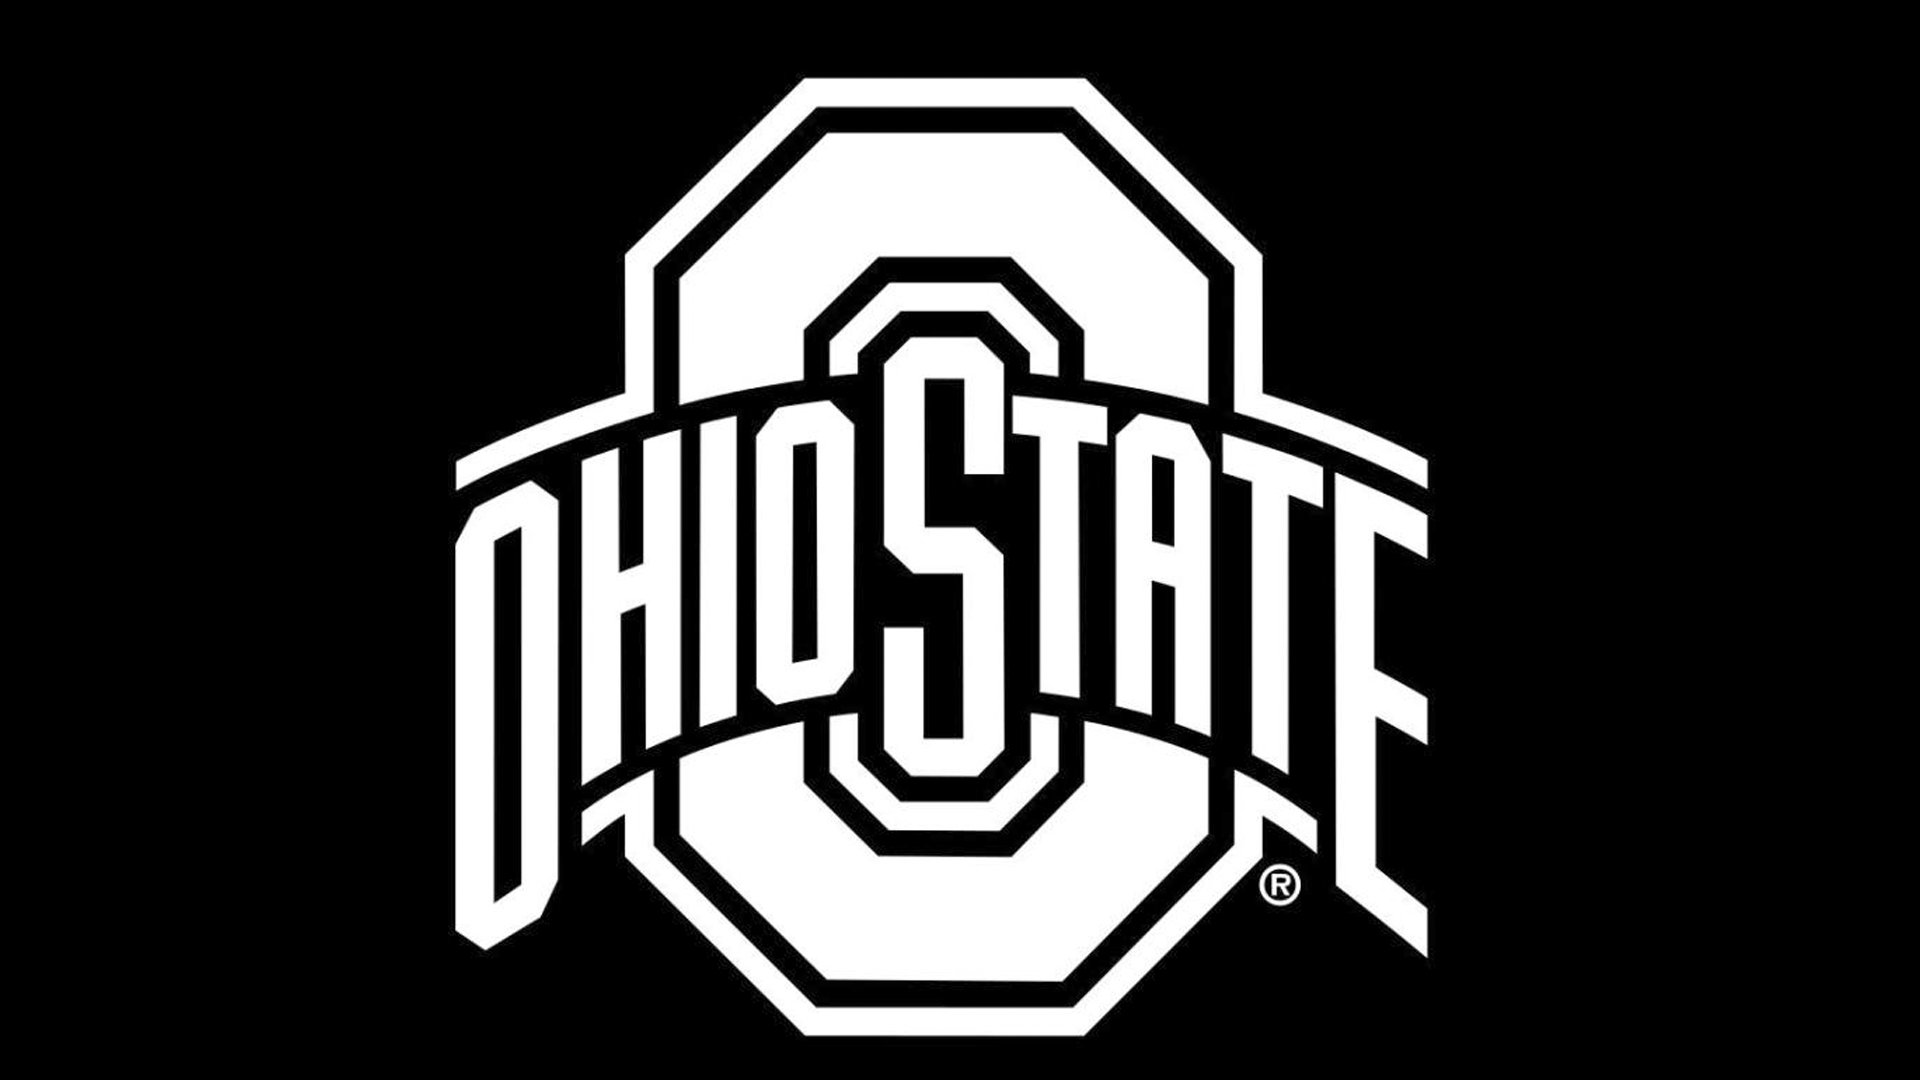 The Ohio State Buckeyes football team is a college football team that competes as part of the NCAA Division I Football Bowl Subdivision representing Ohio State